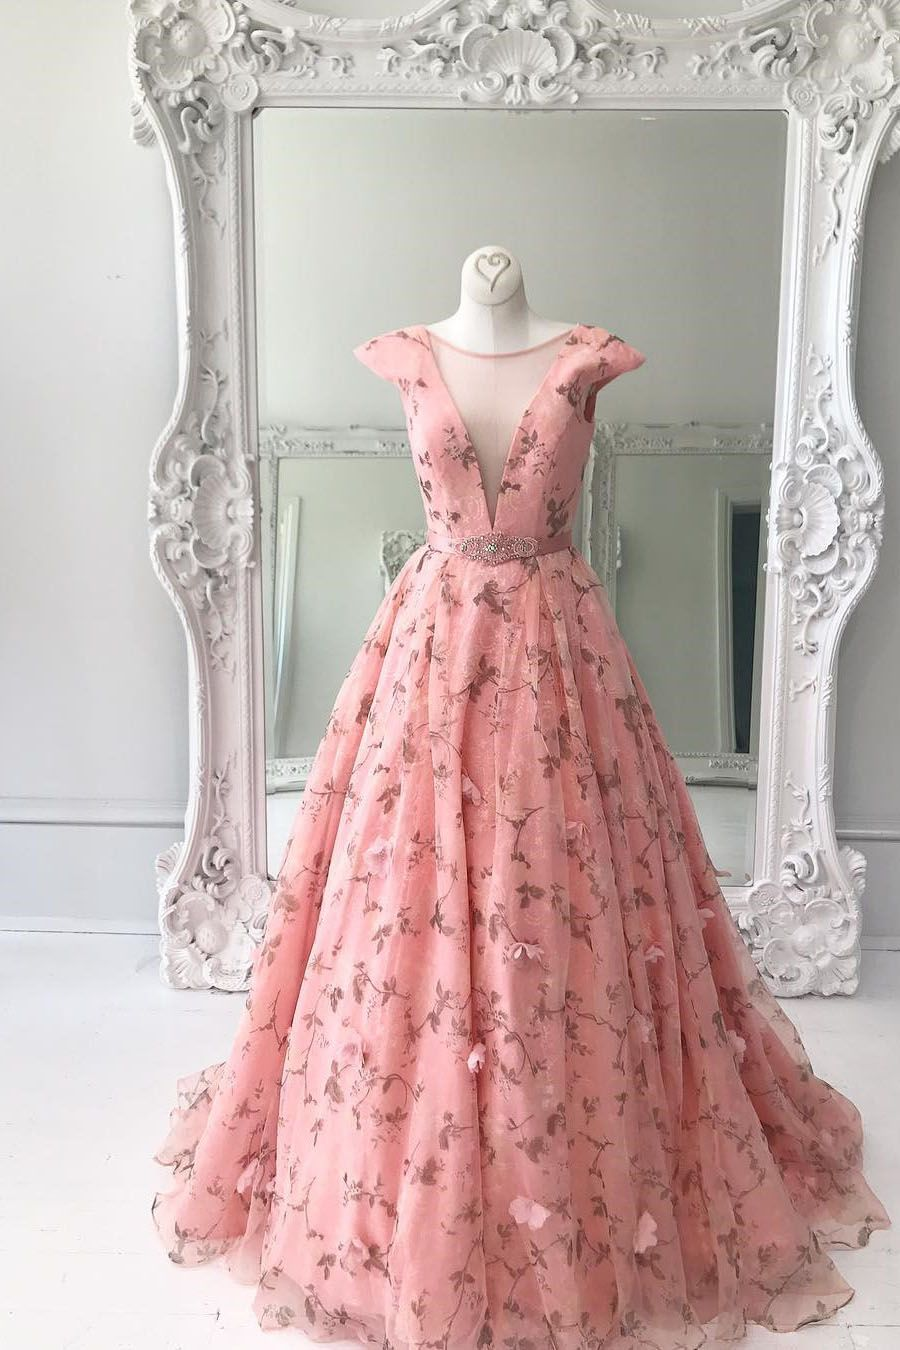 Princess Pink Long Prom Dress Ball Gown | 2k17 homecoming dresses ...